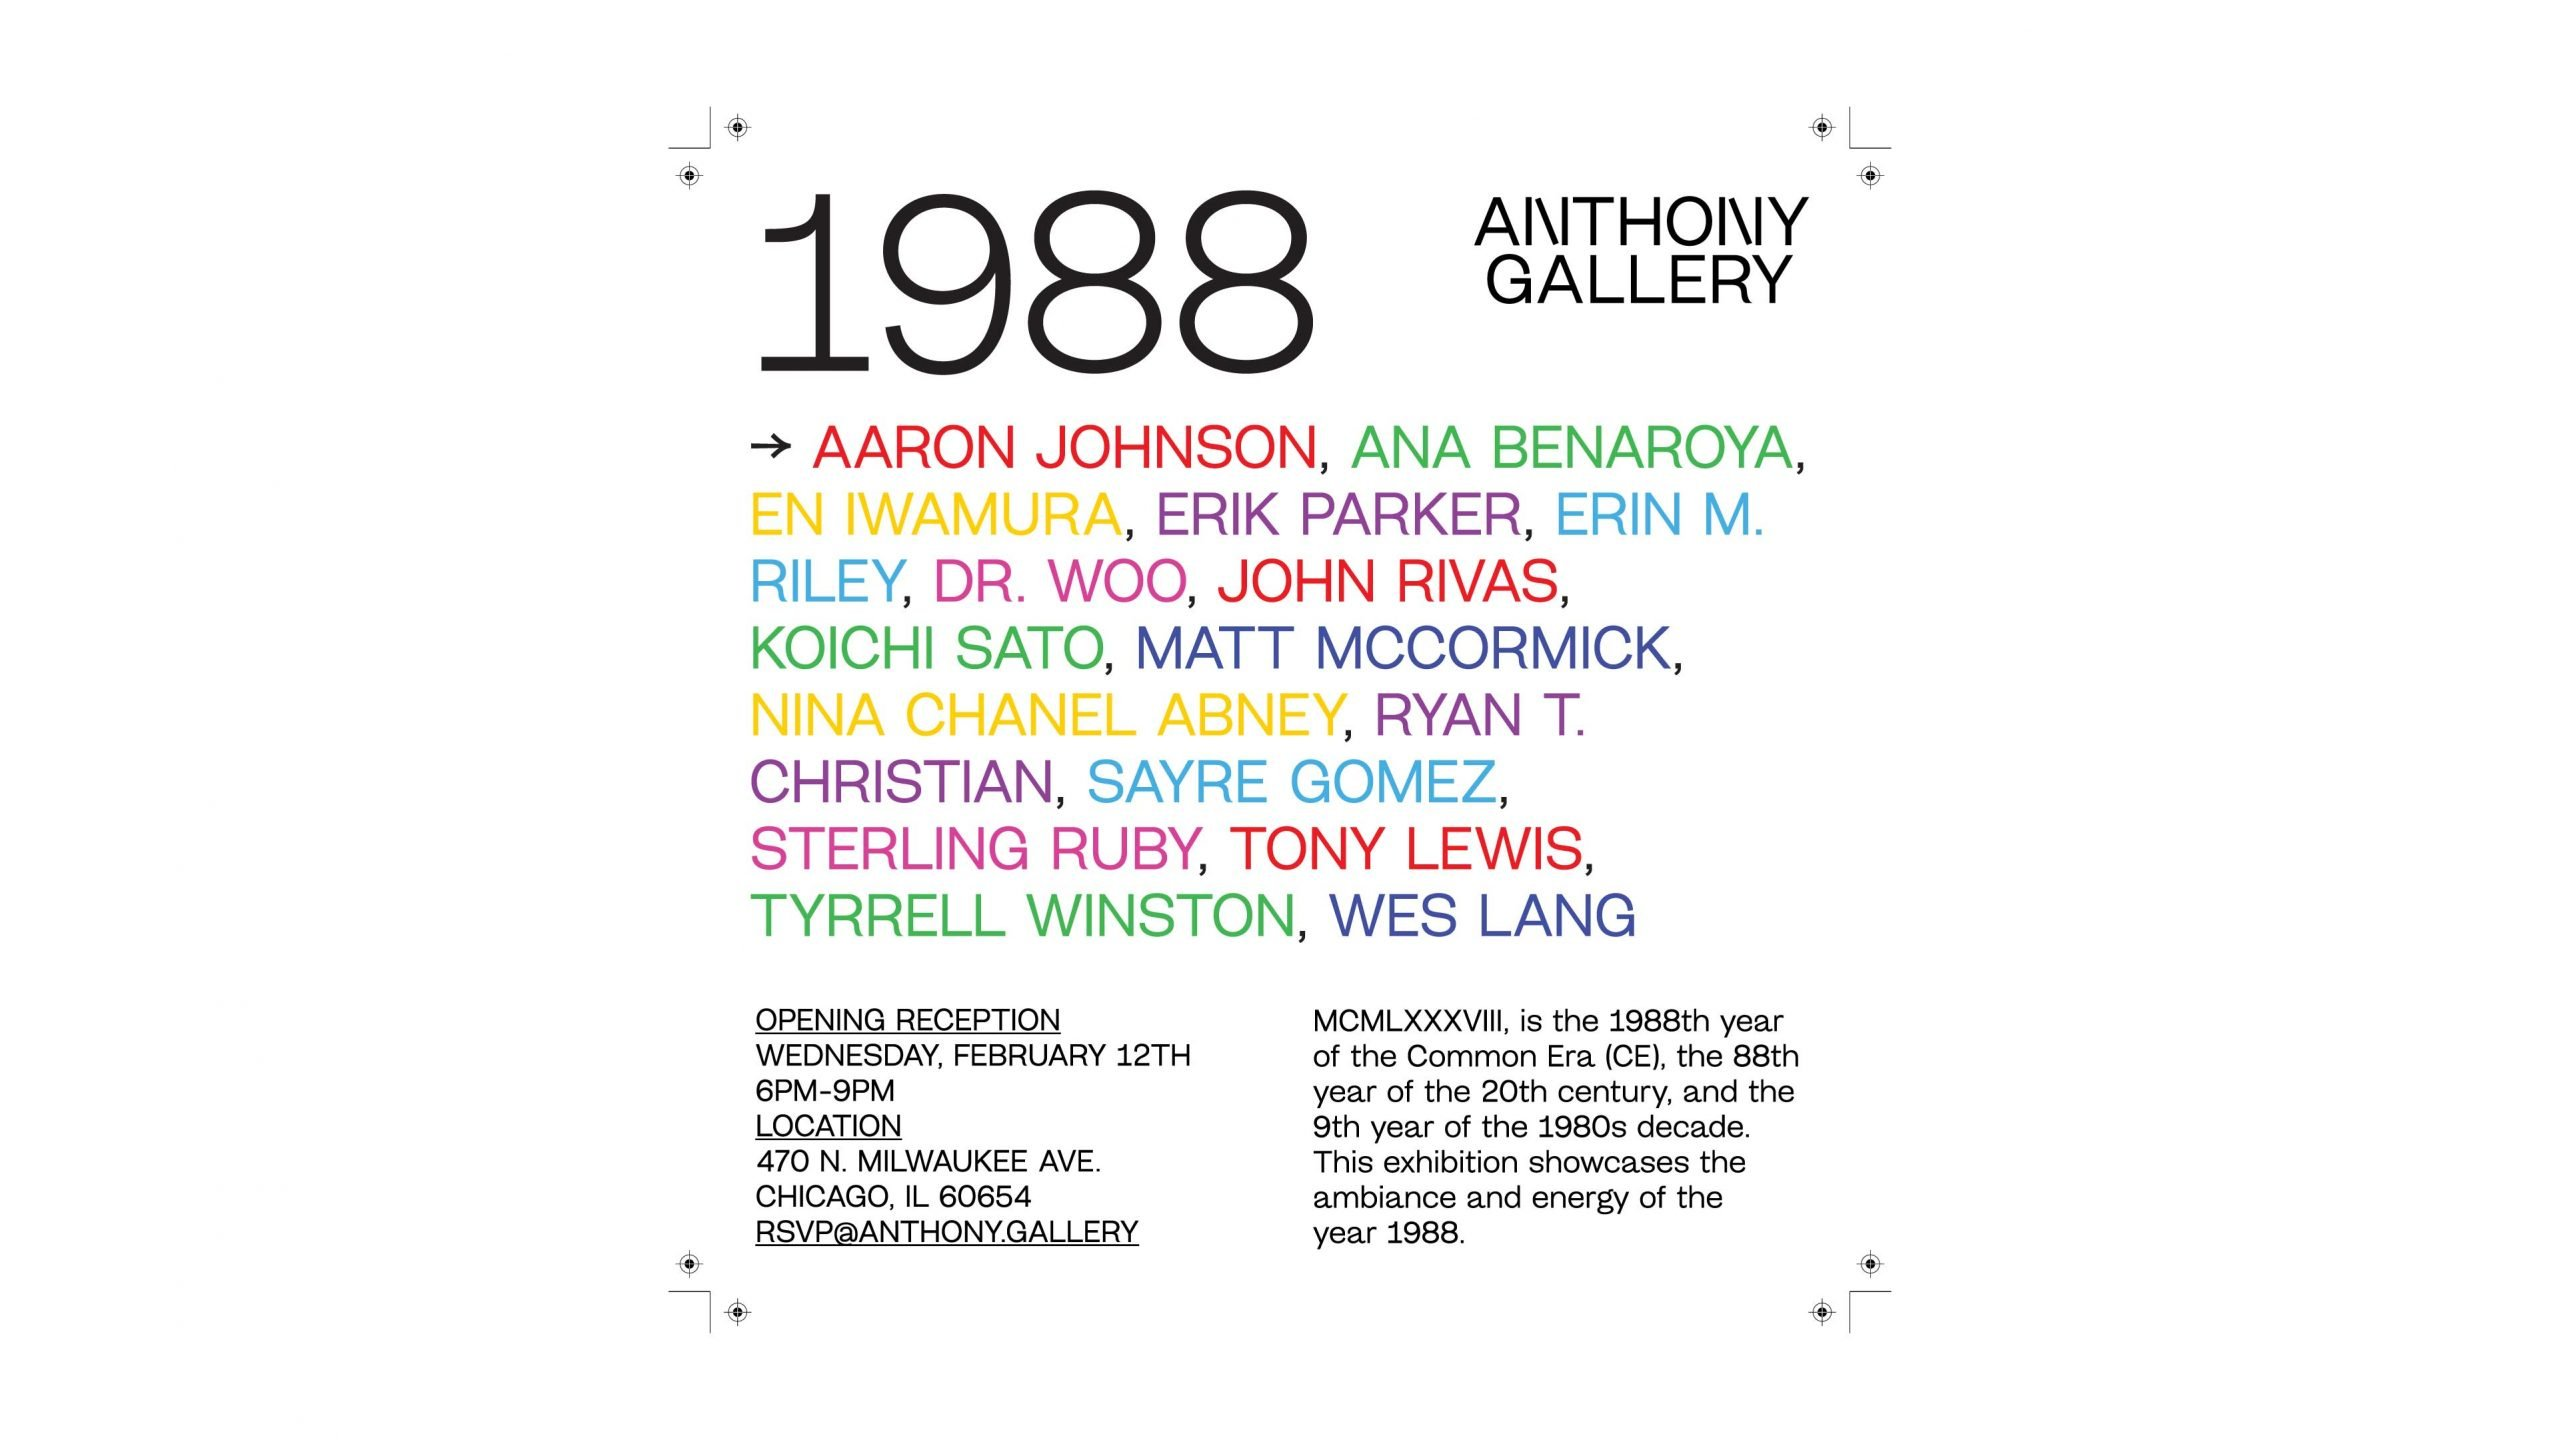 ANTHONY-GALLERY-exhibition-02